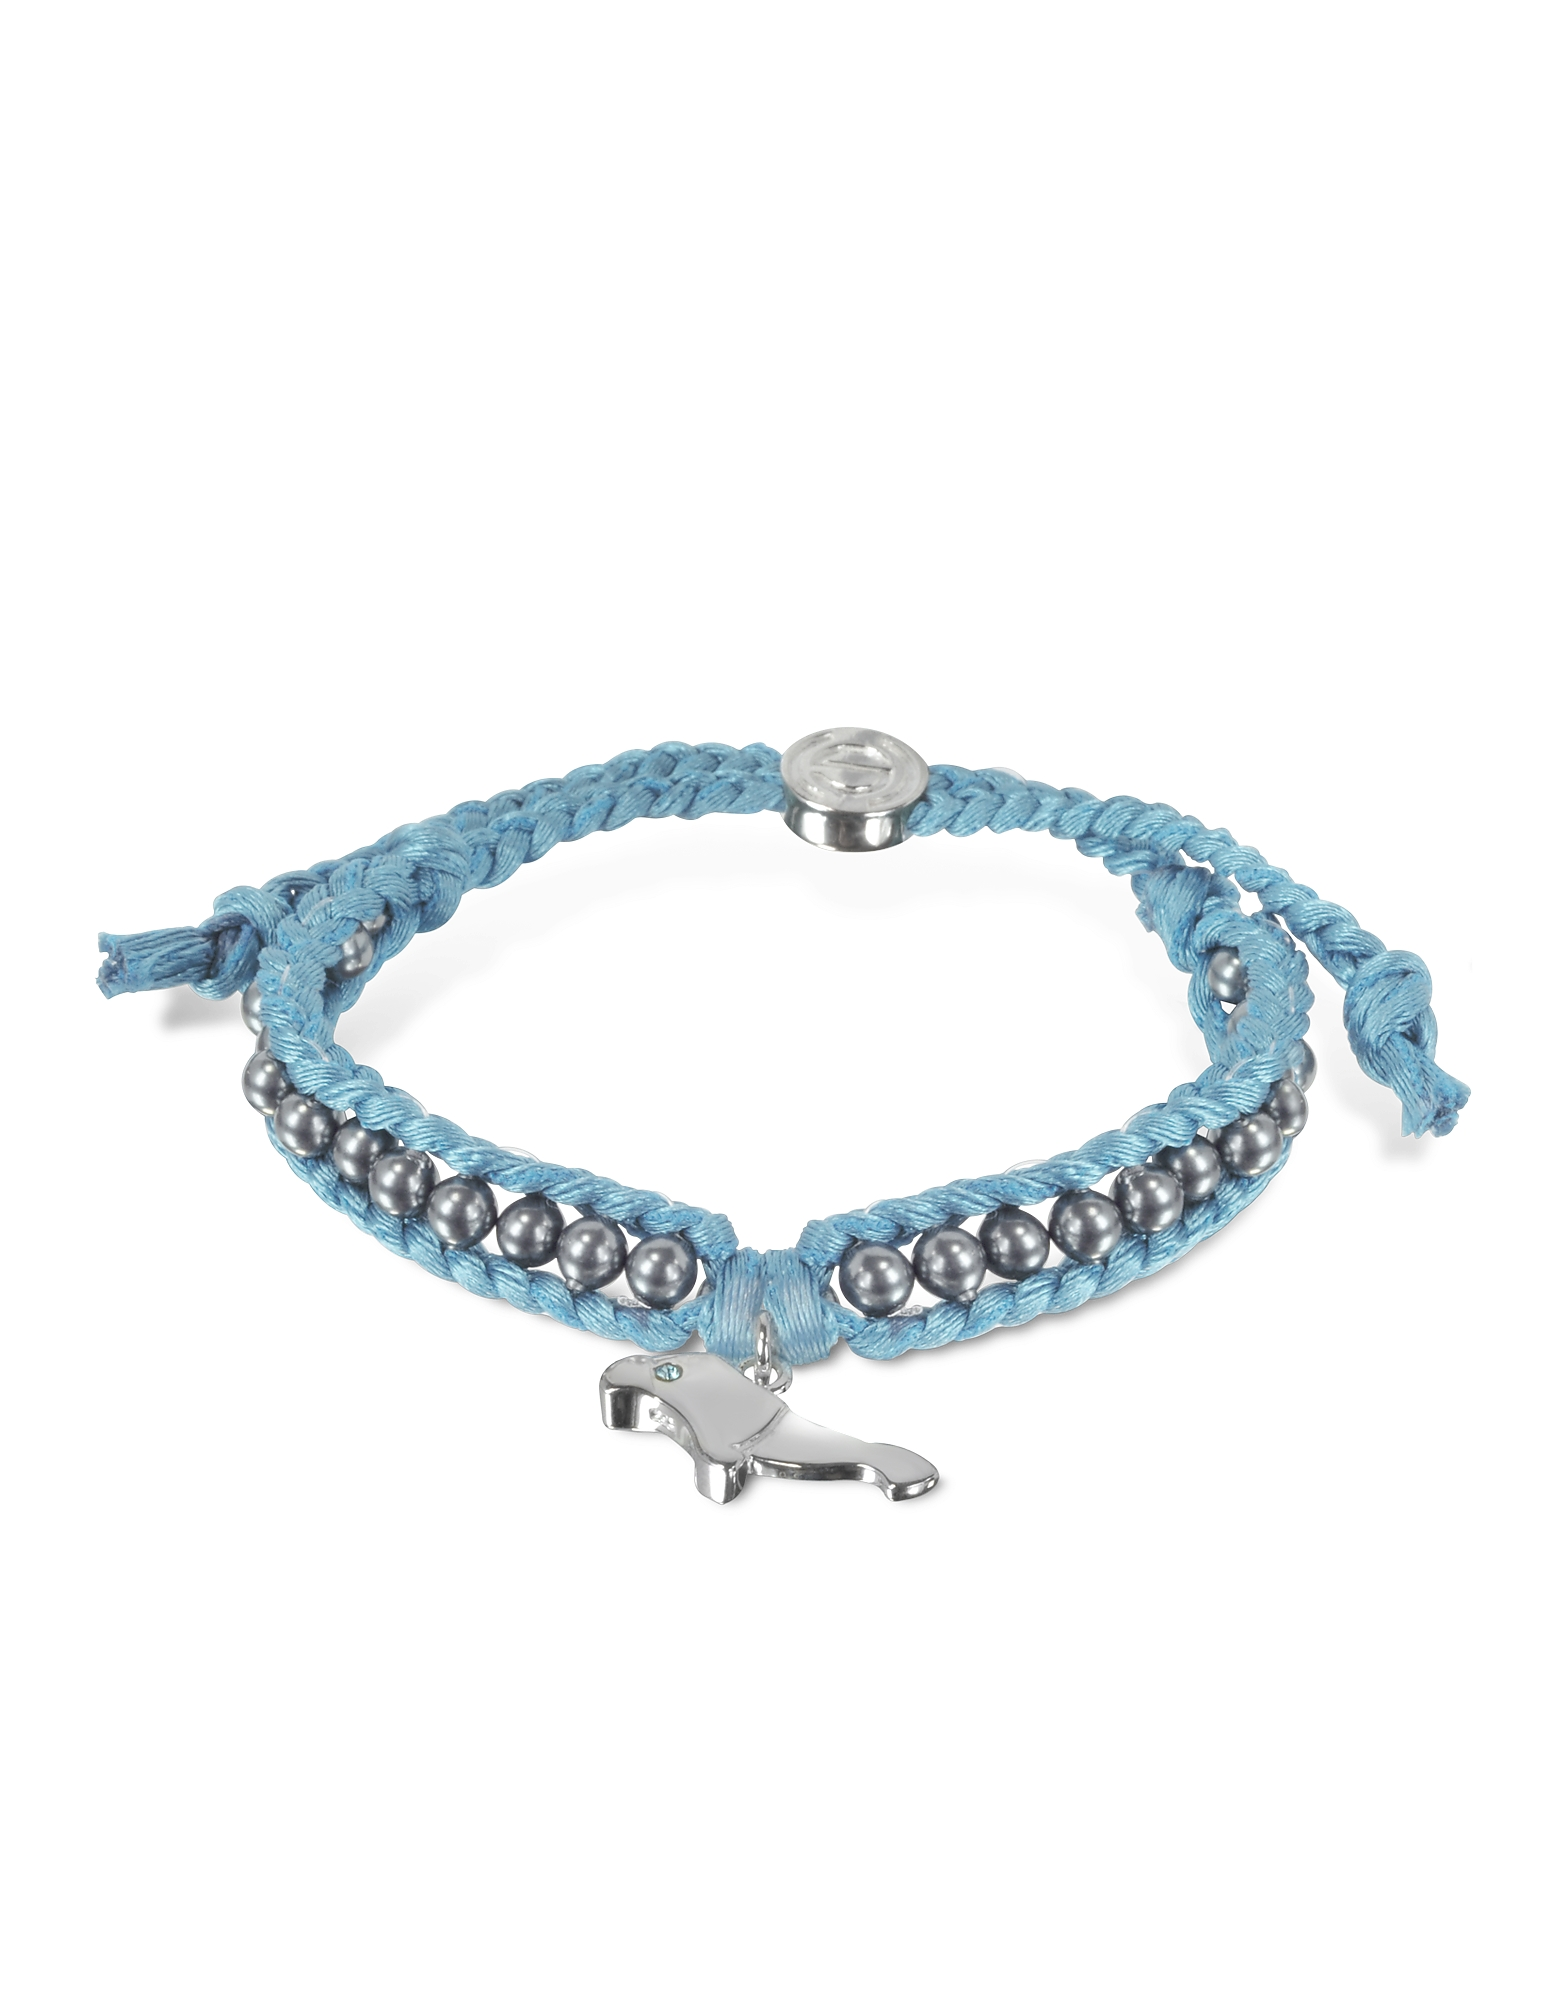 Sho London Bracelets, Manatee Friendship Silk Bracelet